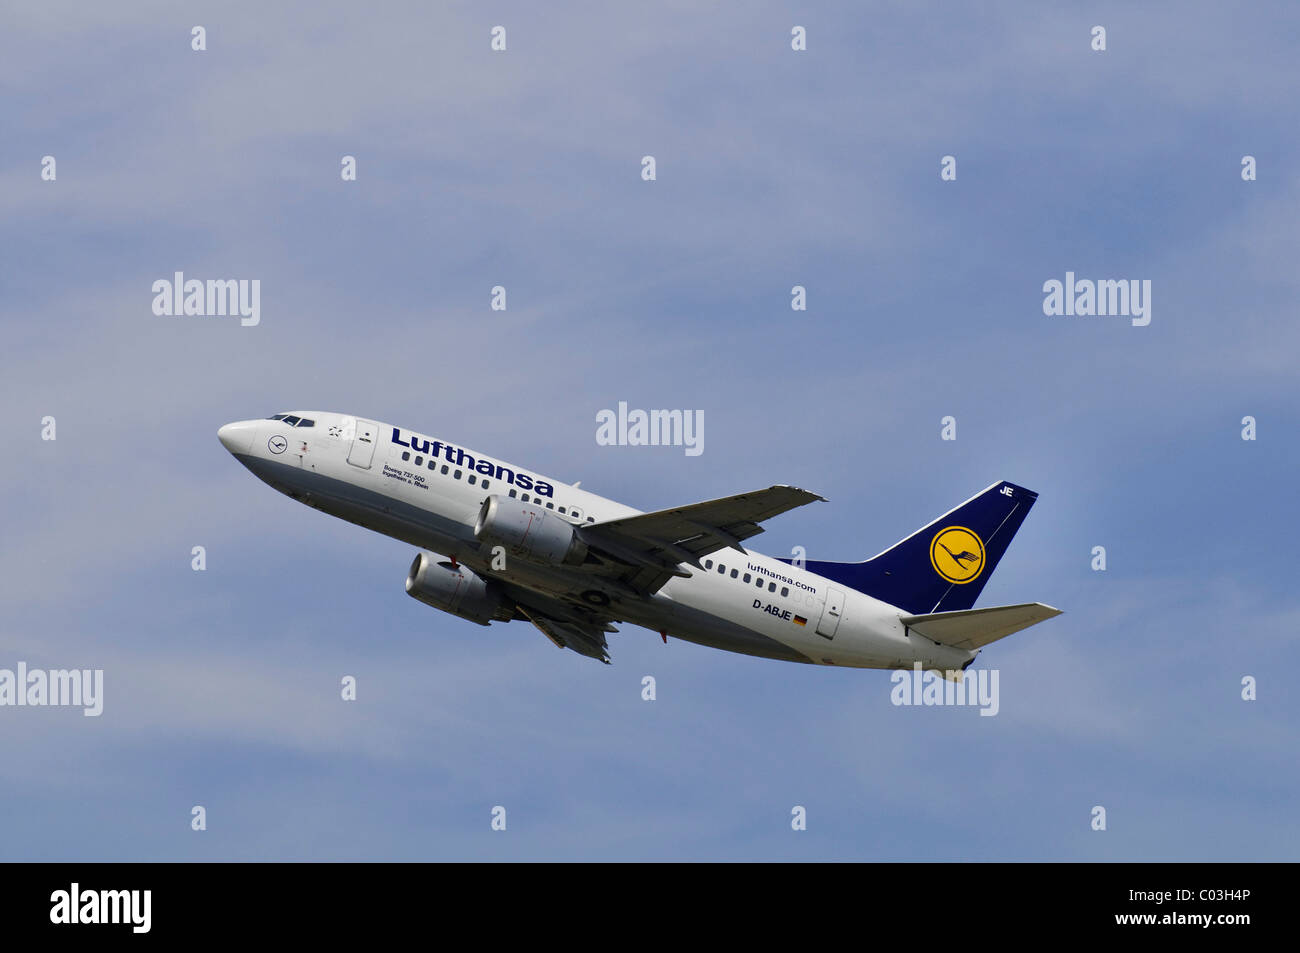 Boeing 737-500 airline from Lufthansa climbing in front of cirrostratus clouds - Stock Image